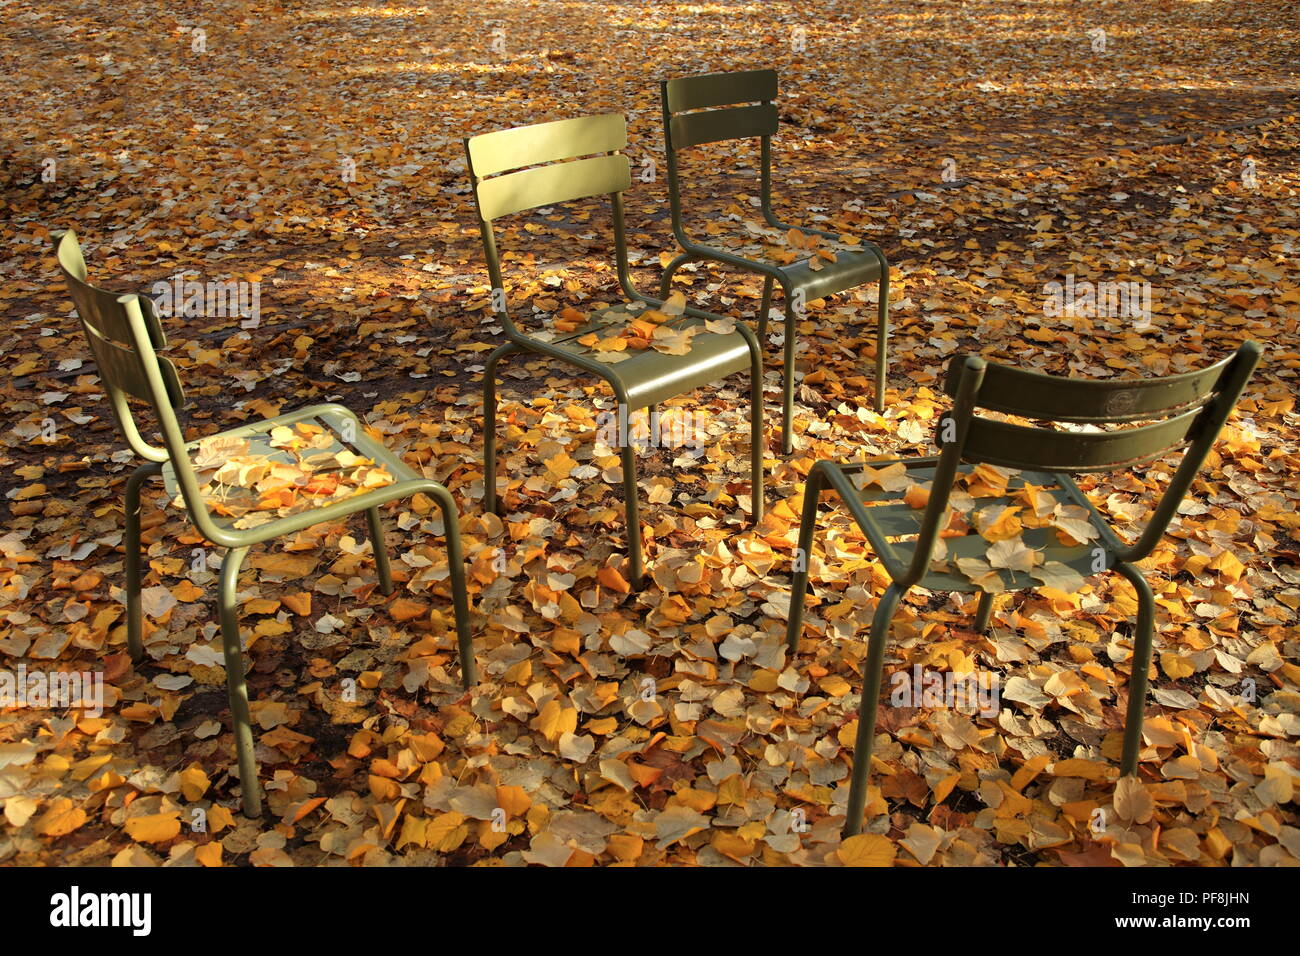 Fallen leaves into the chairs of the Luxembourg garden, Paris, Ile de France, 75, France - Stock Image